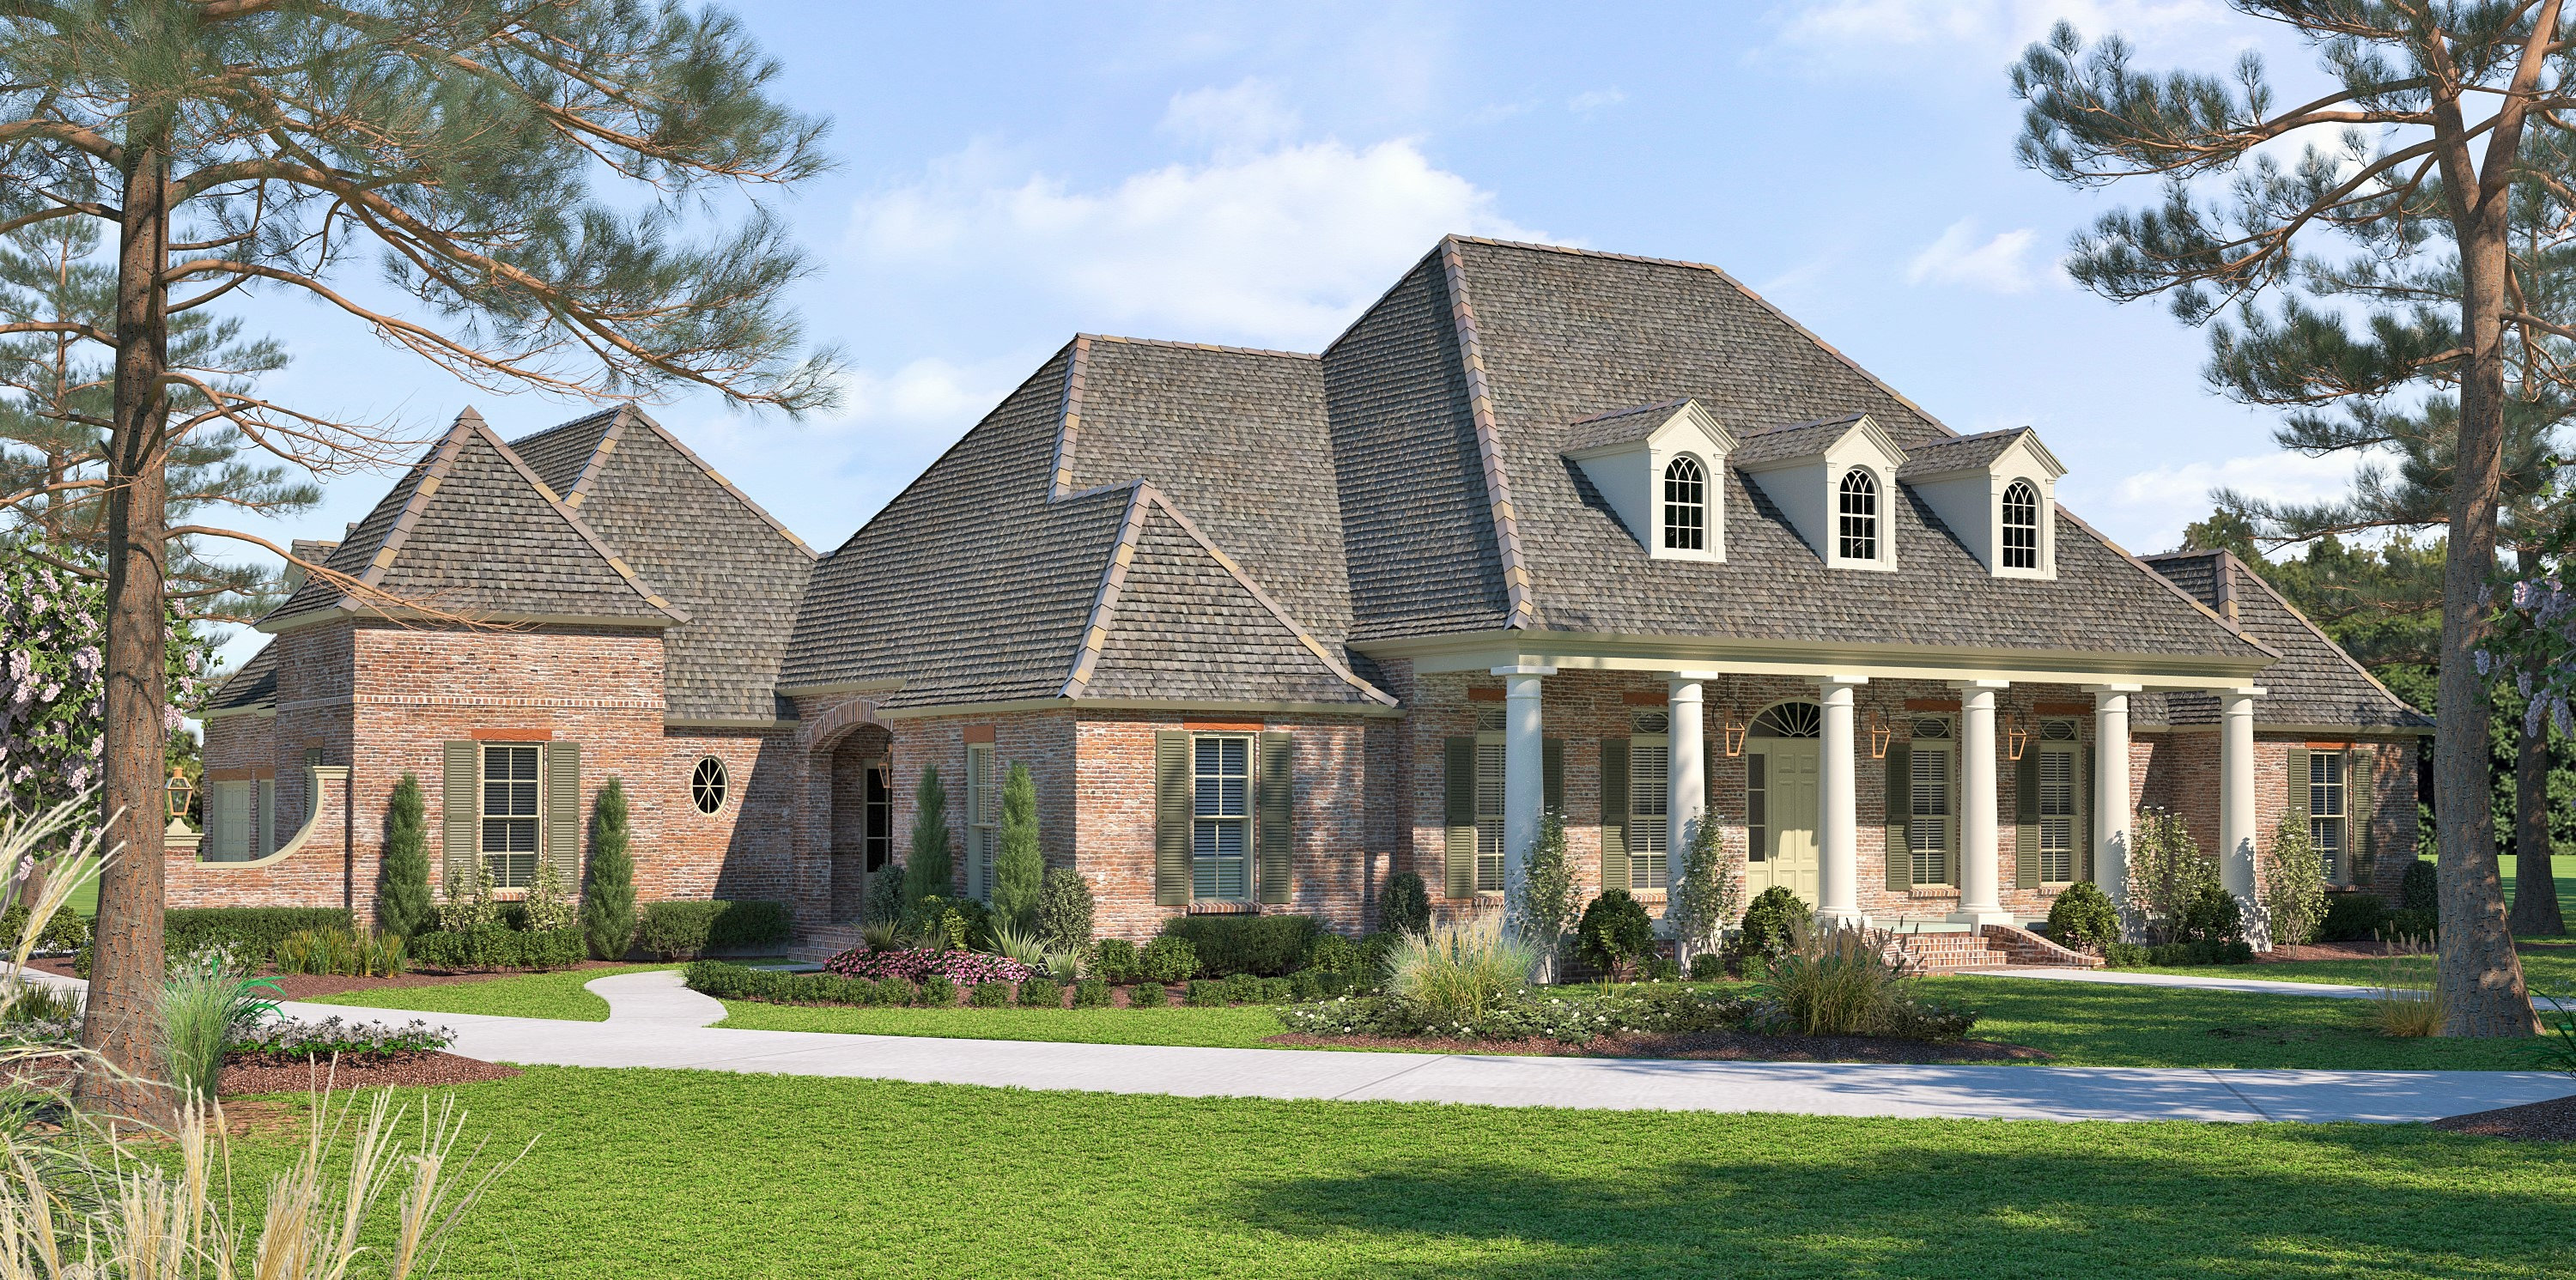 Acadian house plans photos joy studio design gallery for Acadian home plans